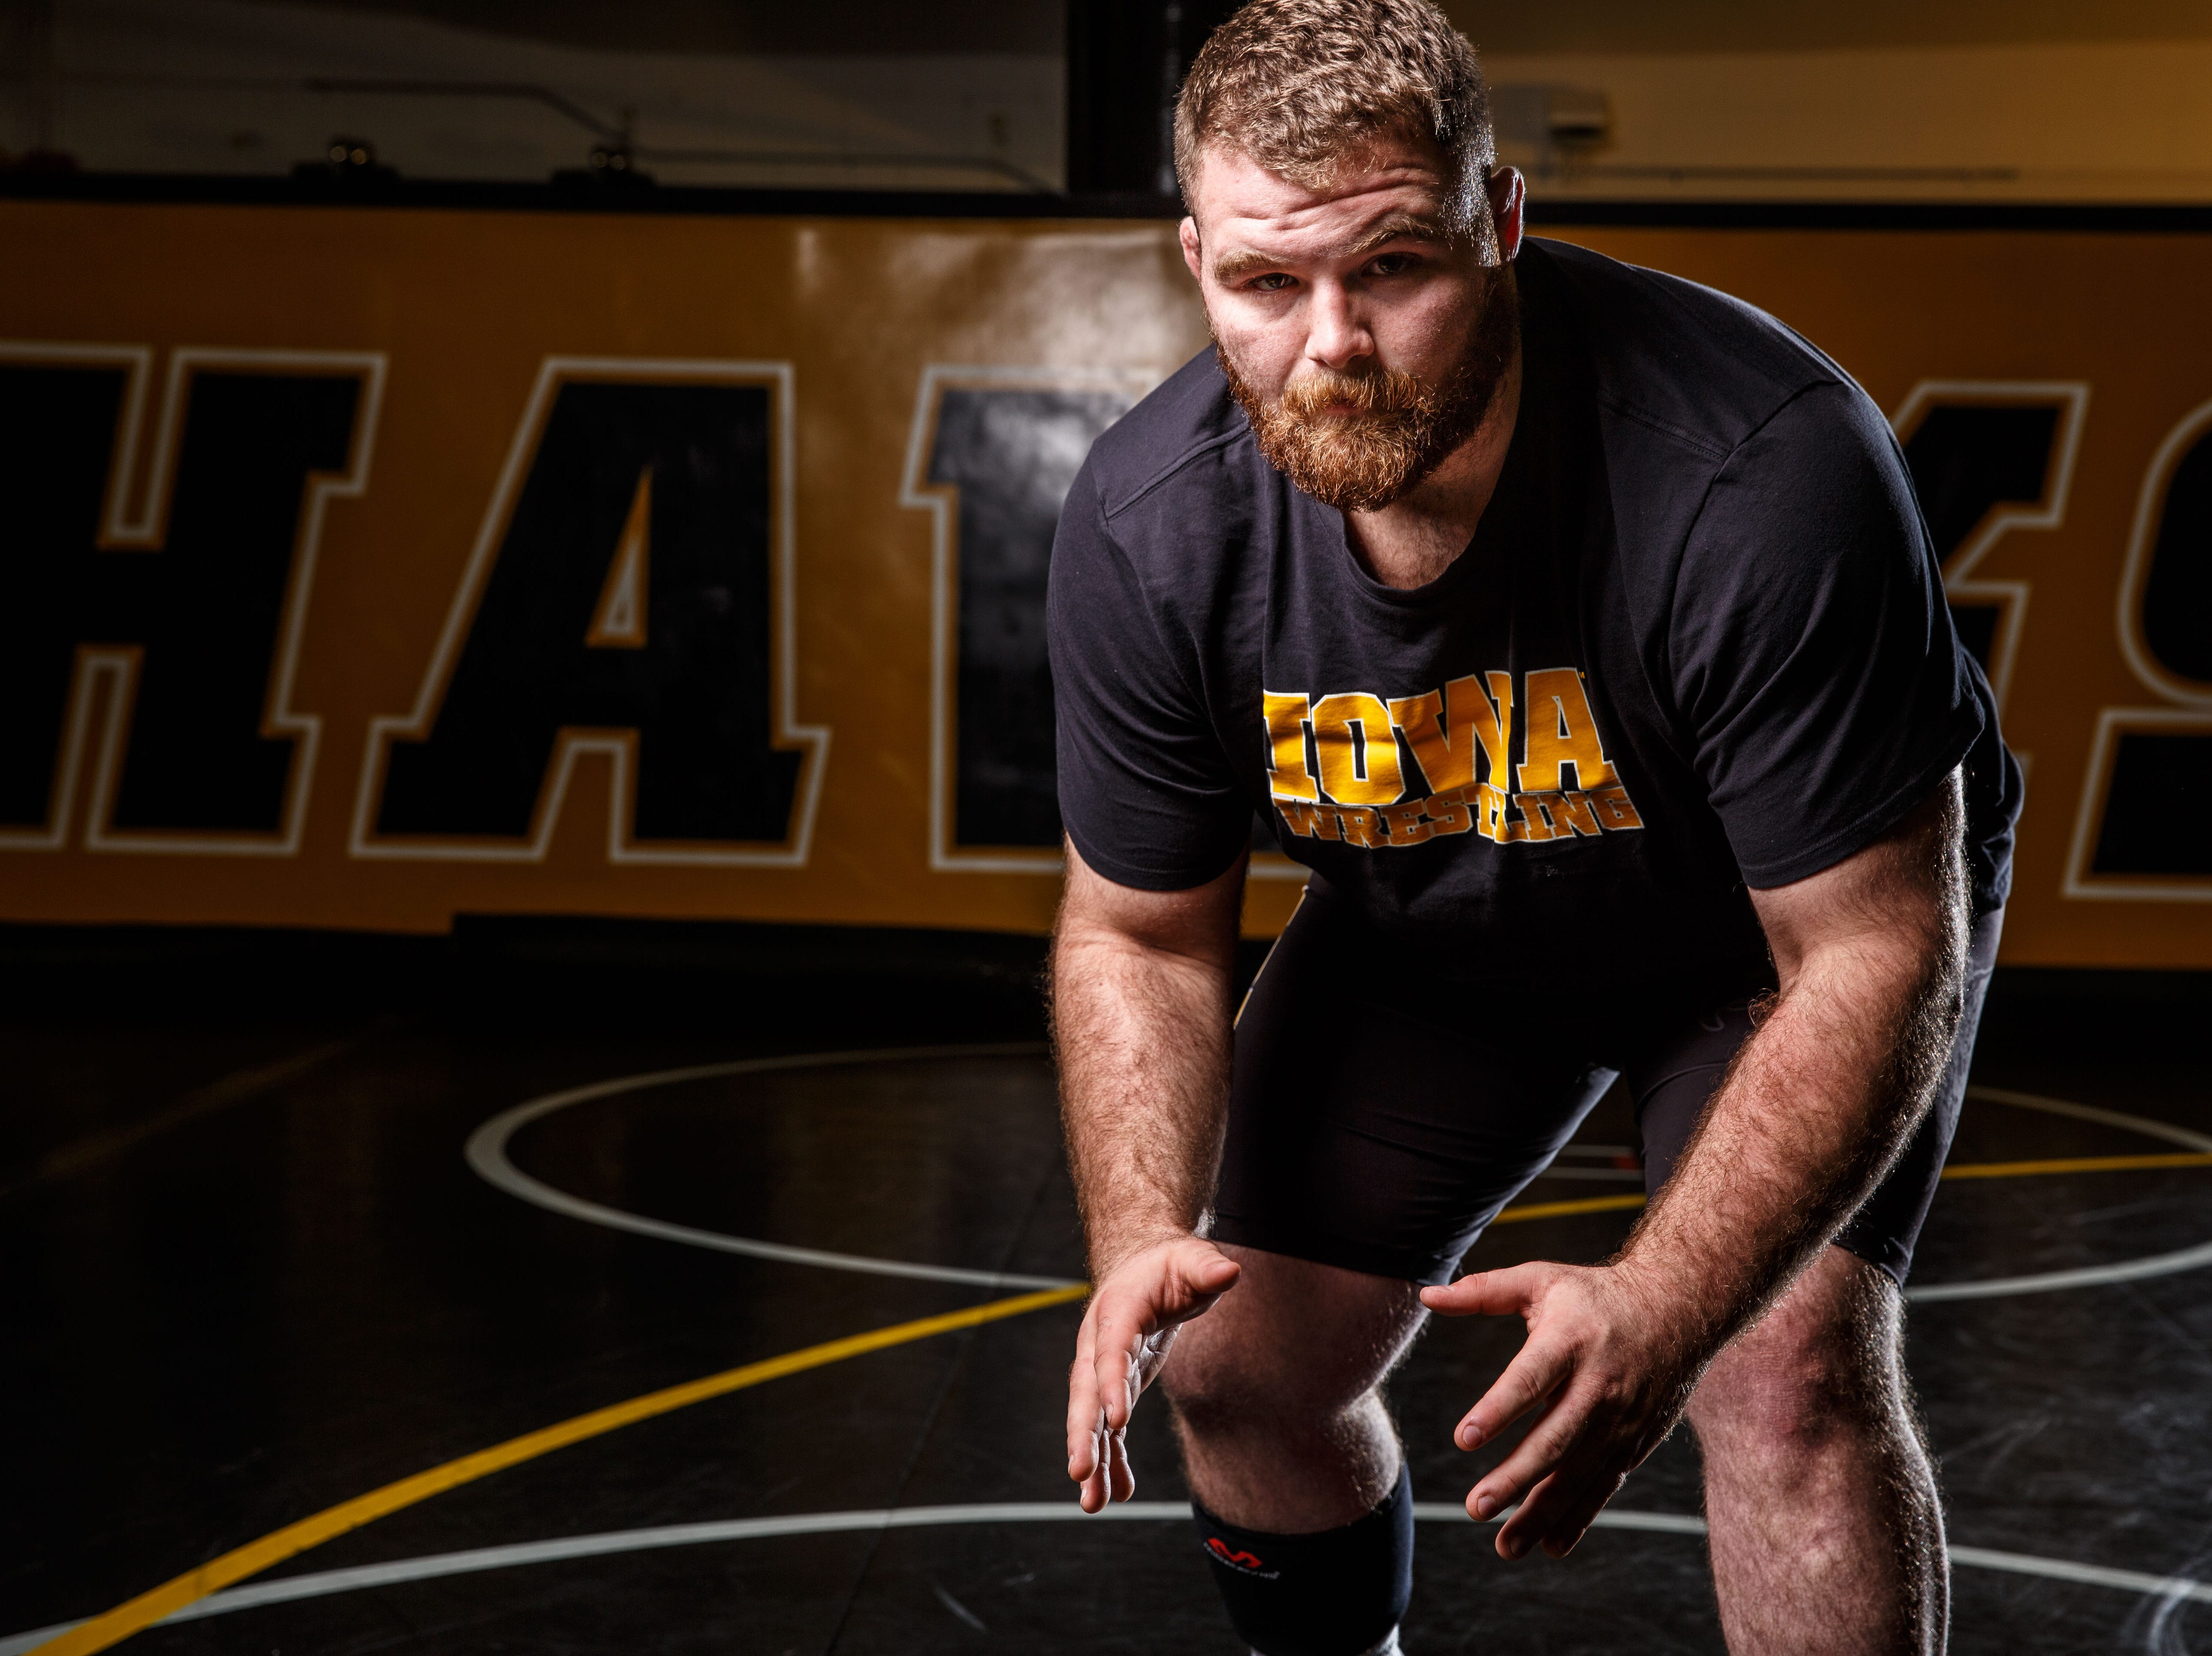 Aaron Costello stands for a portrait during Iowa wrestling media day Monday, Nov. 5, 2018.